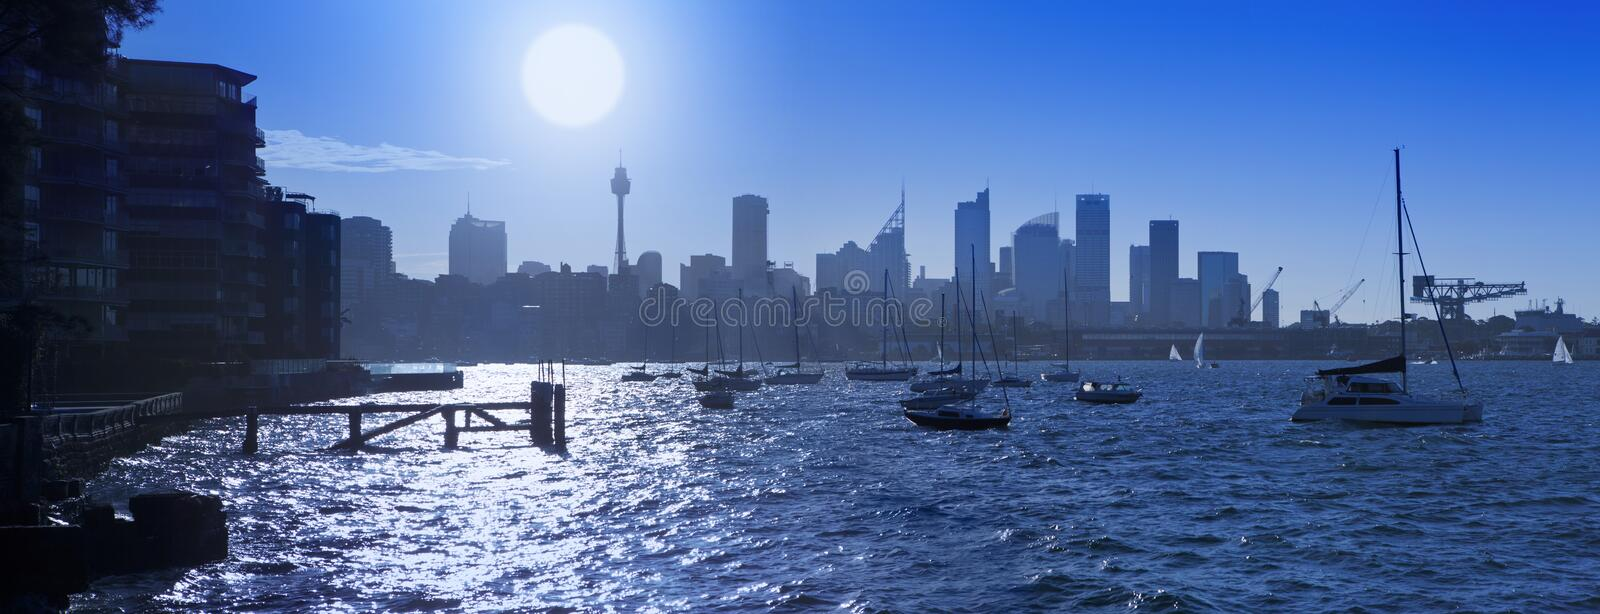 Sydney Harbour Skyline Australia royalty free stock image